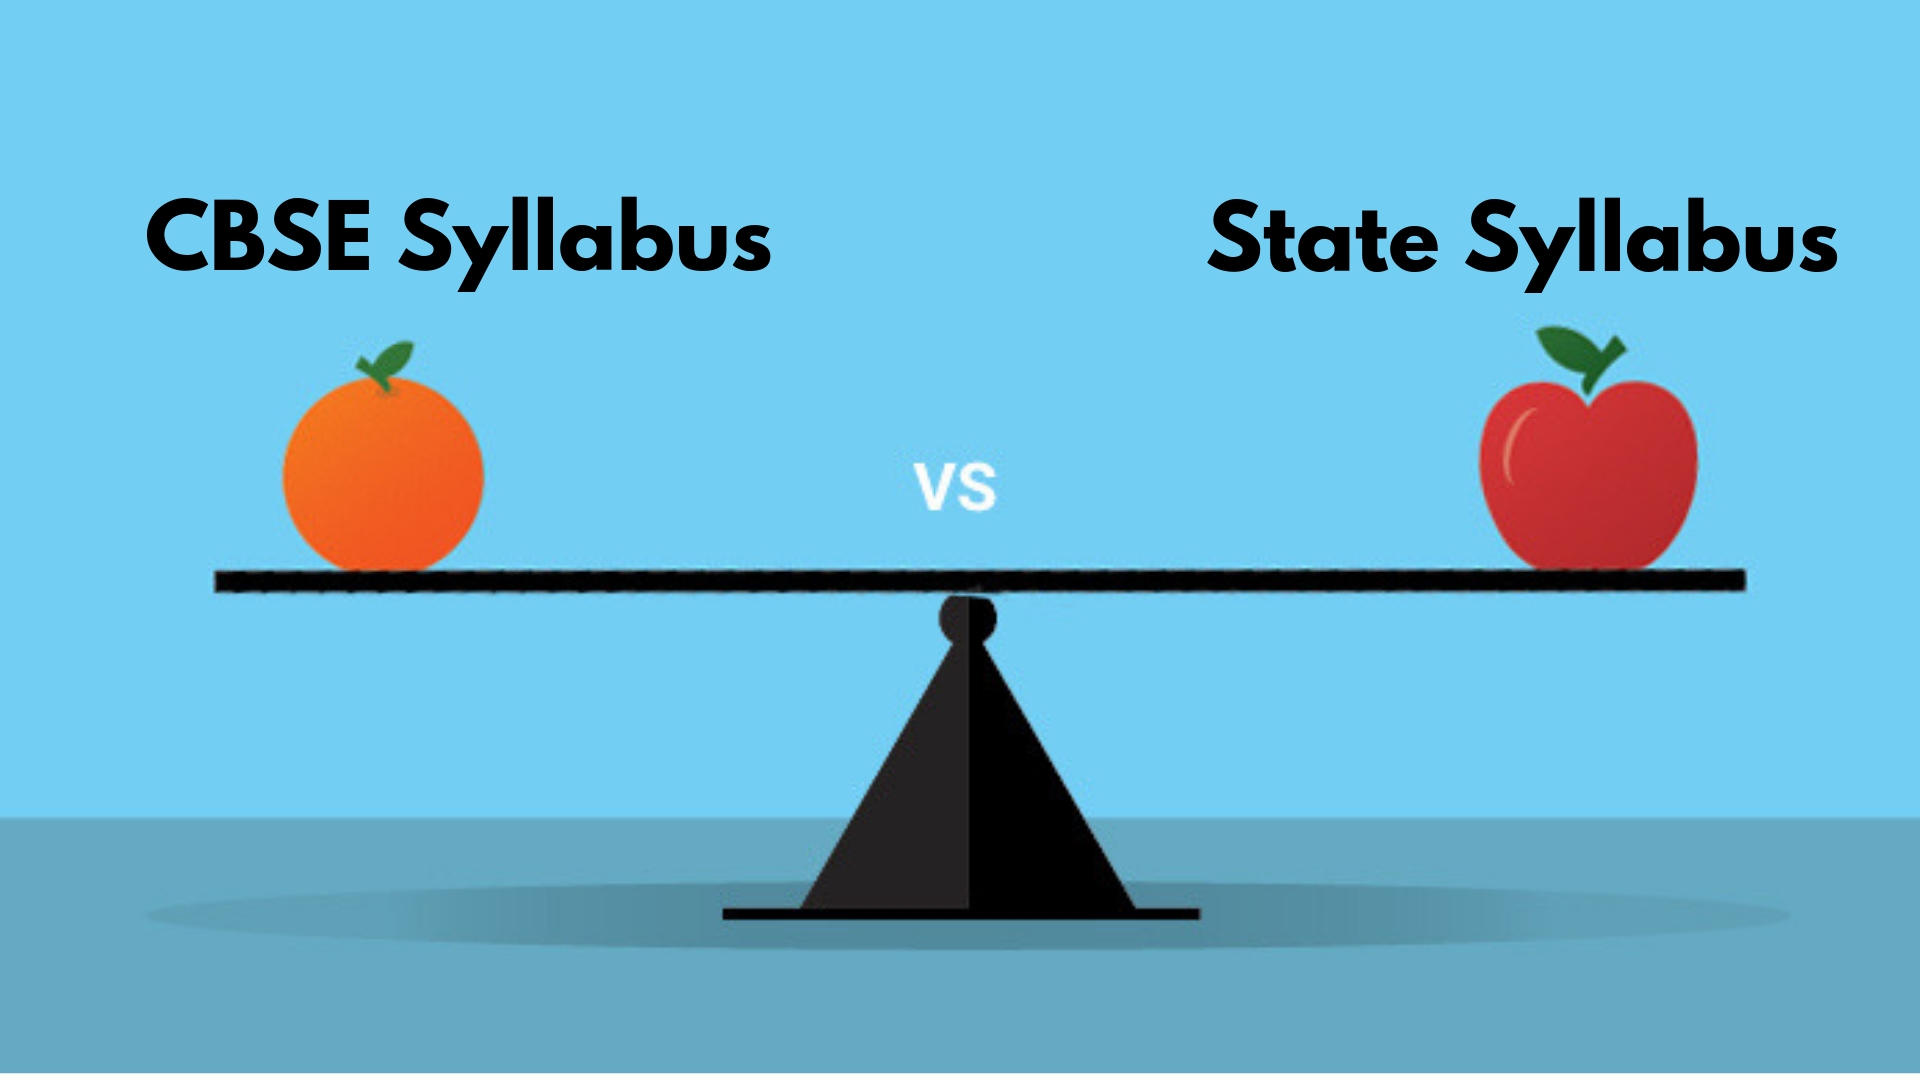 Top 5 Advantages of CBSE Syllabus over State Boards